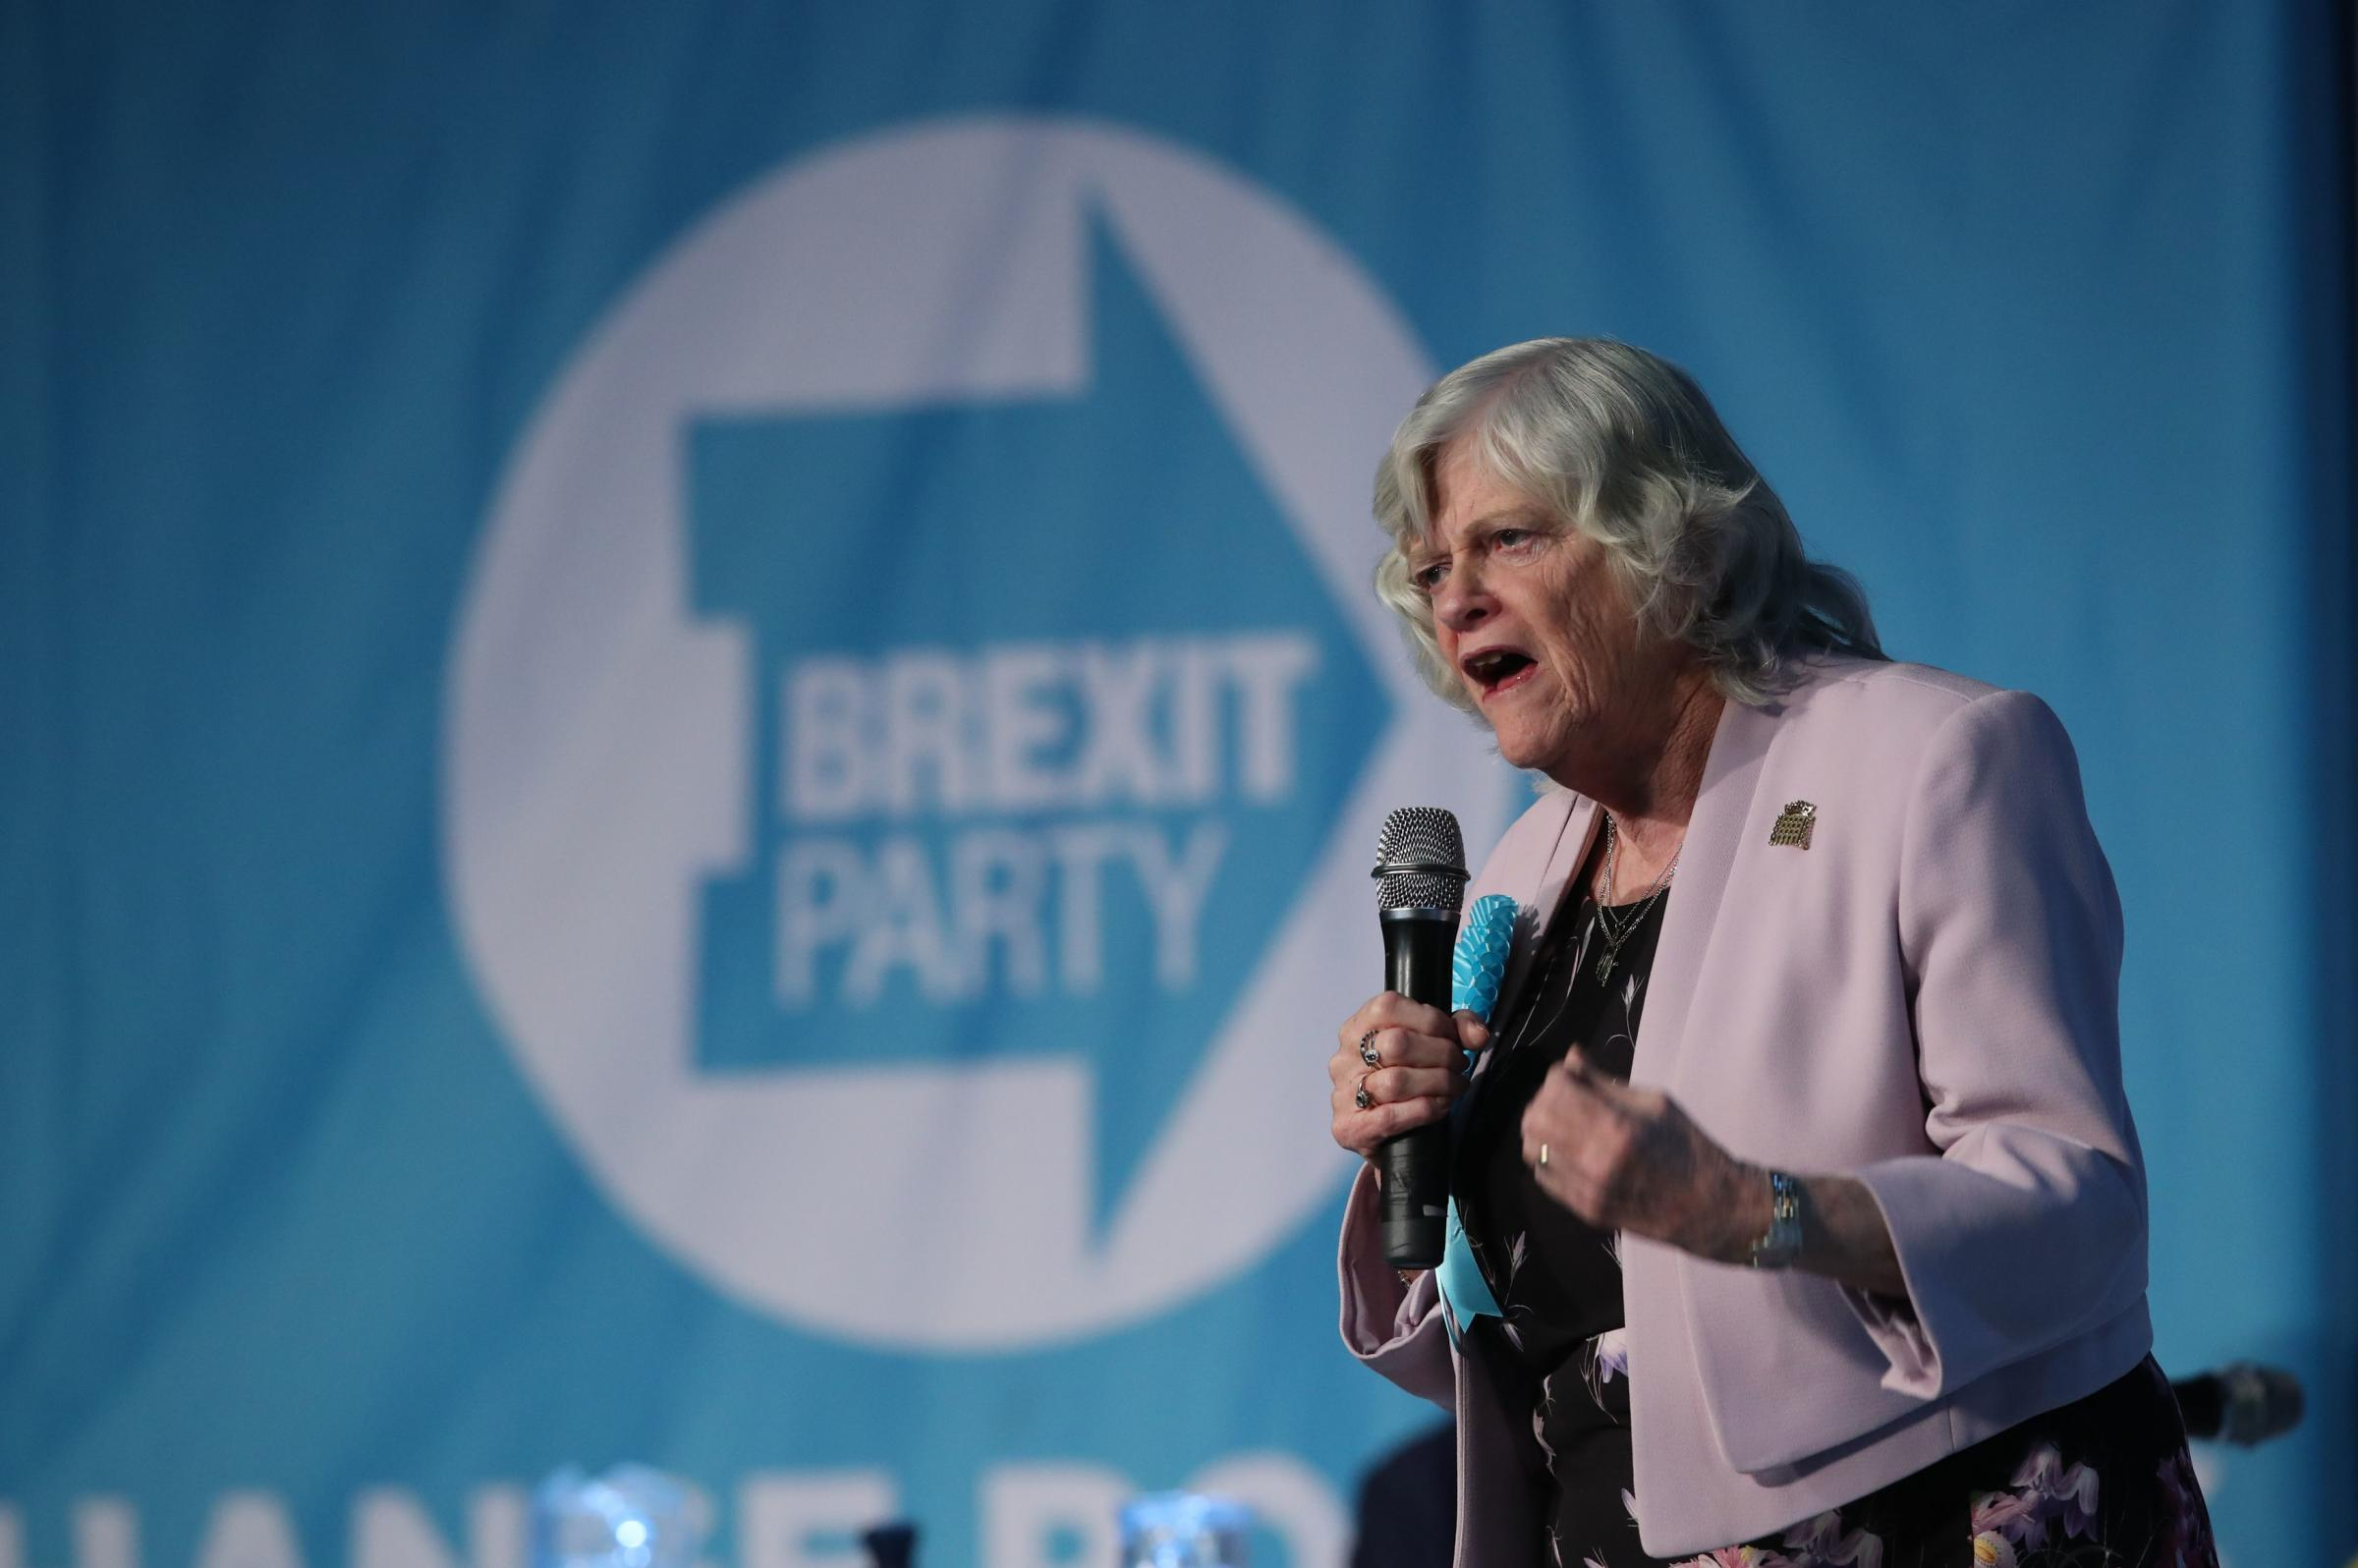 'Factories close all the time': Brexit Party's Ann Widdecombe on Honda